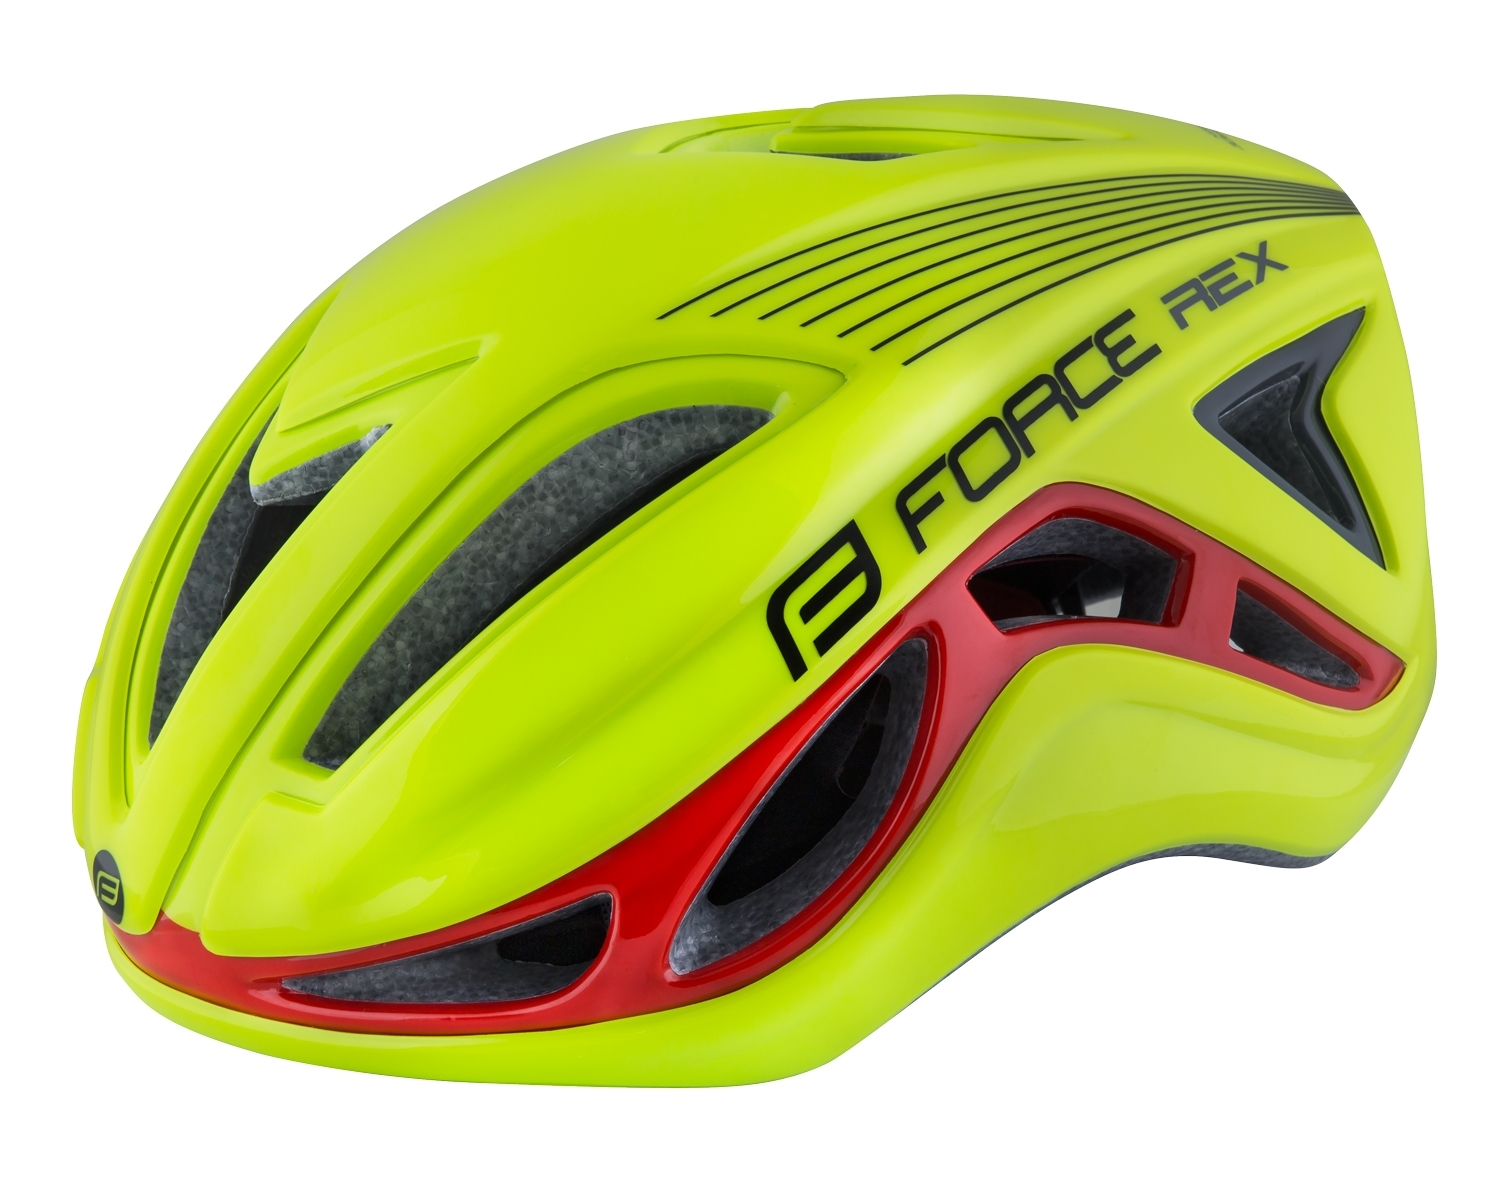 CASCO ROAD FORCE REX FLUO YELLOW-RED